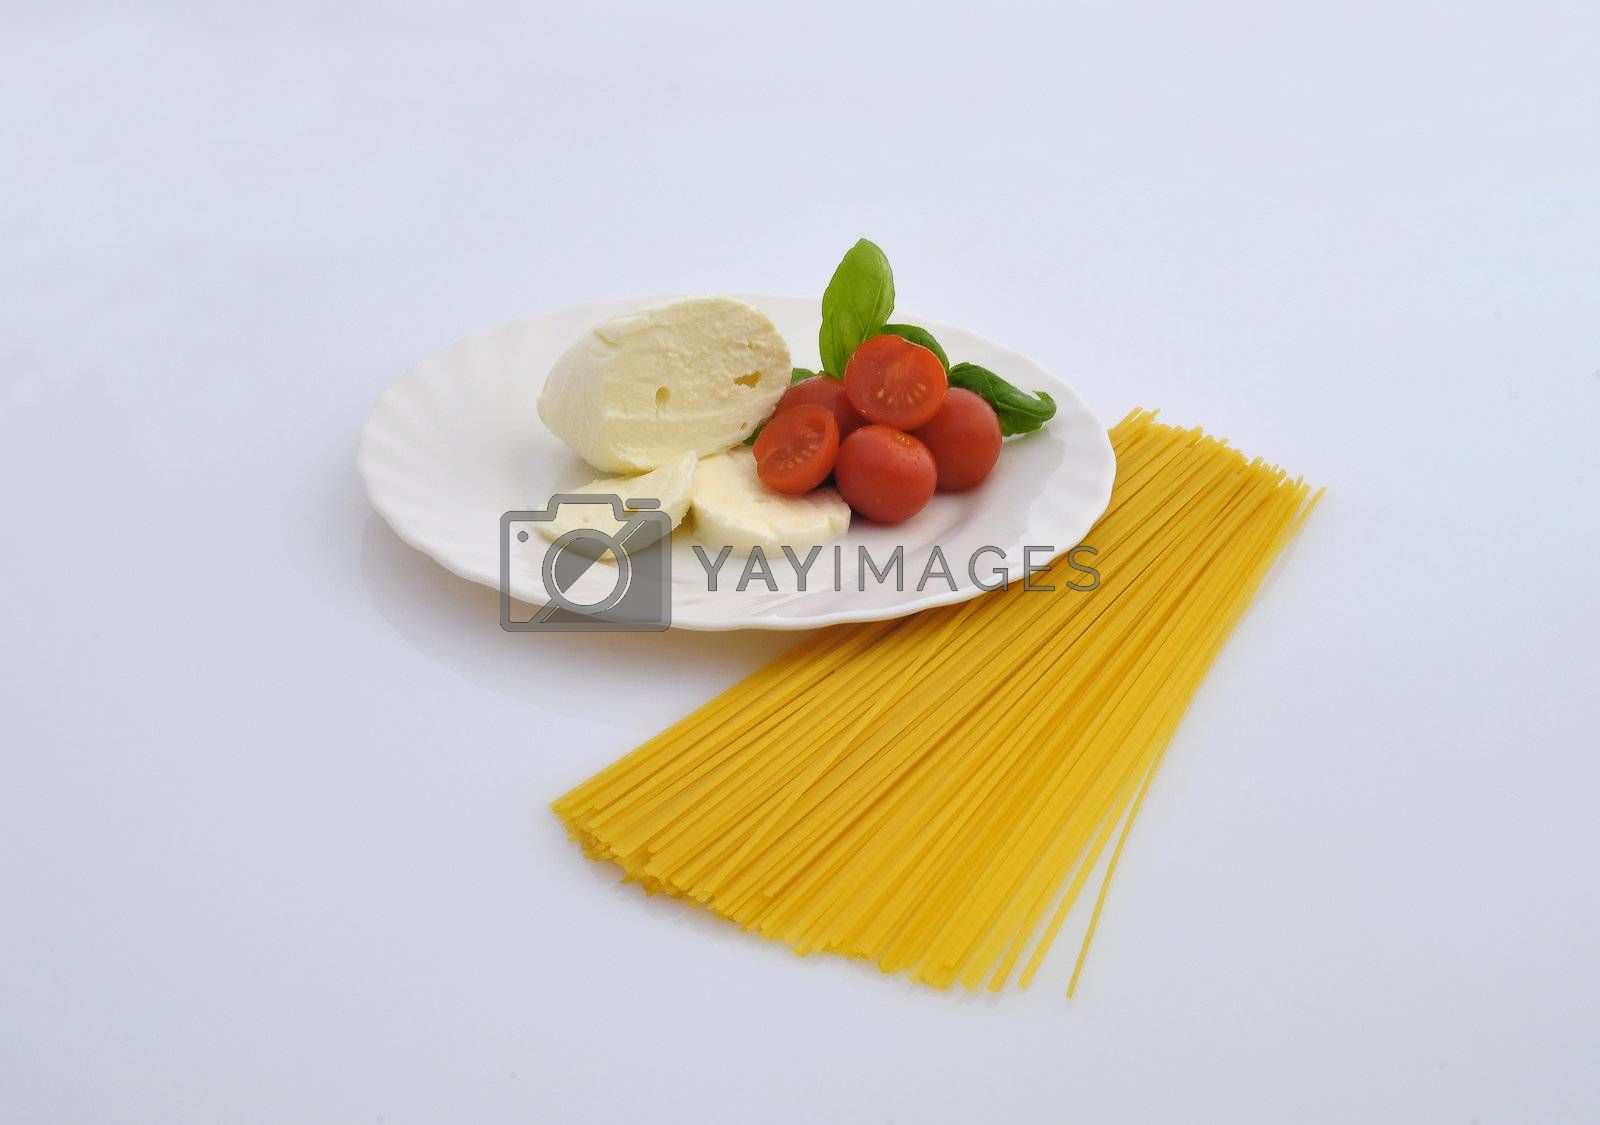 cheese, tomatoes and pasta on white background